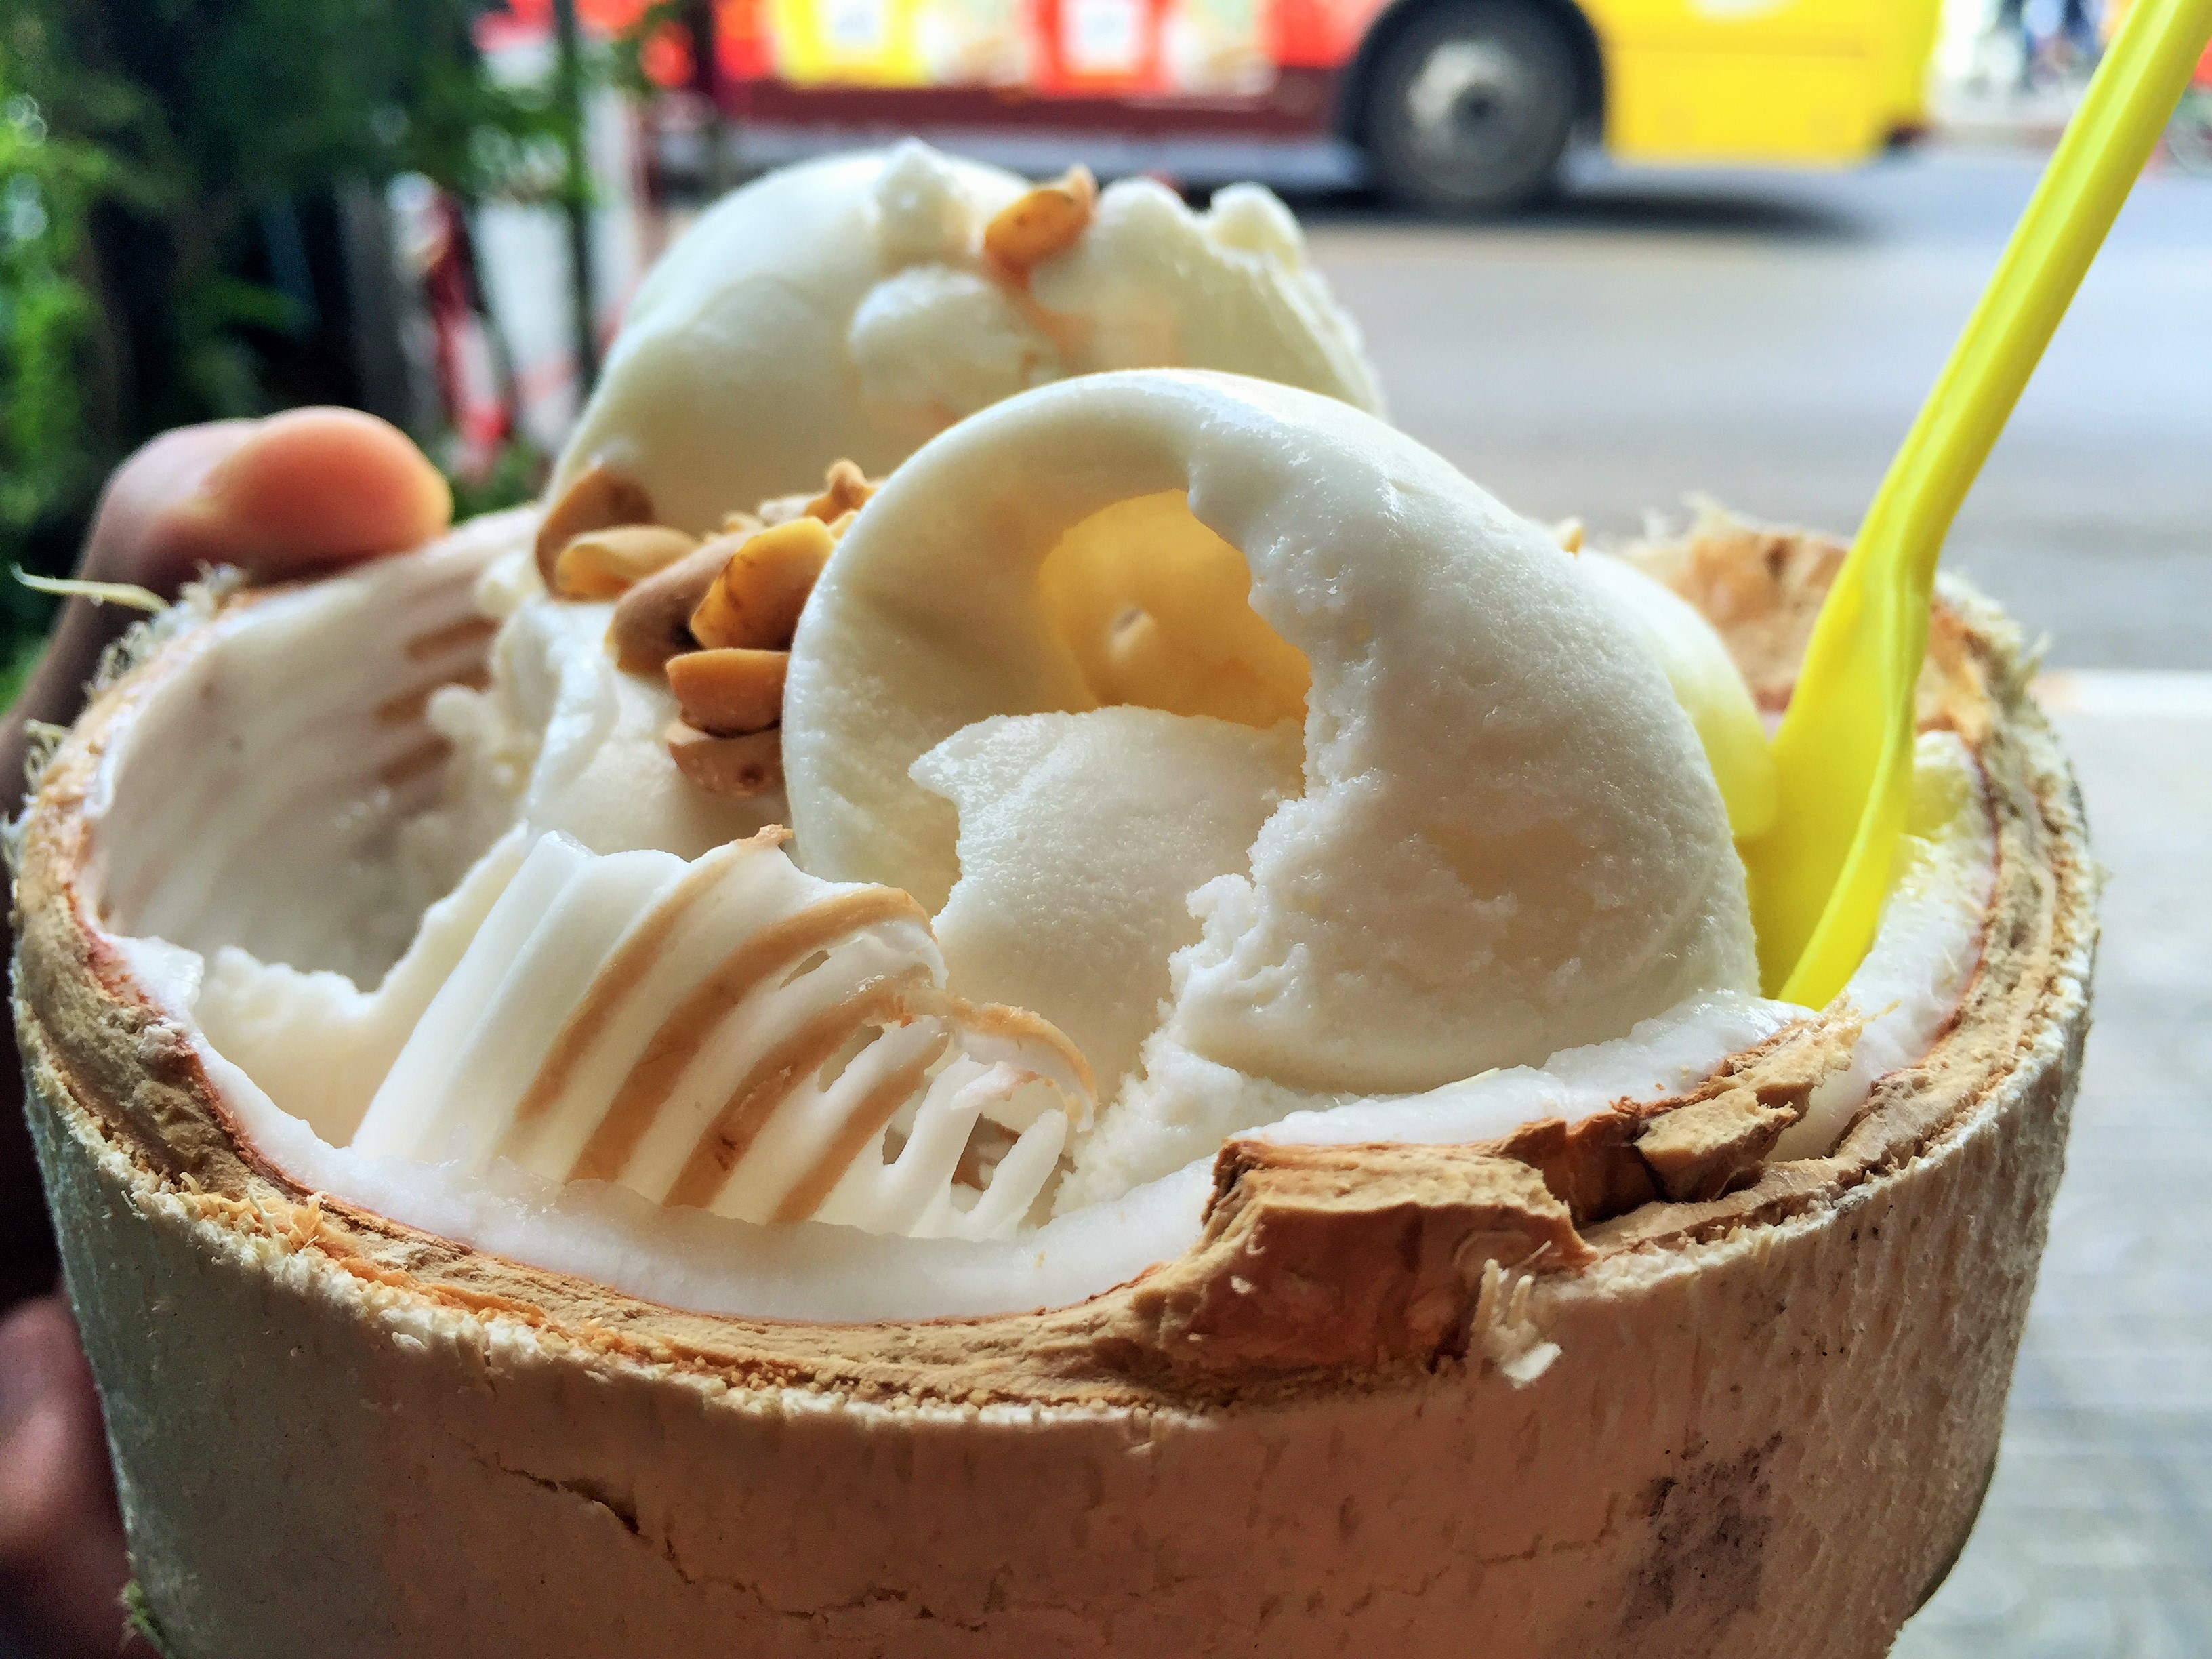 Coconut in Ice cream form... what's not to like?